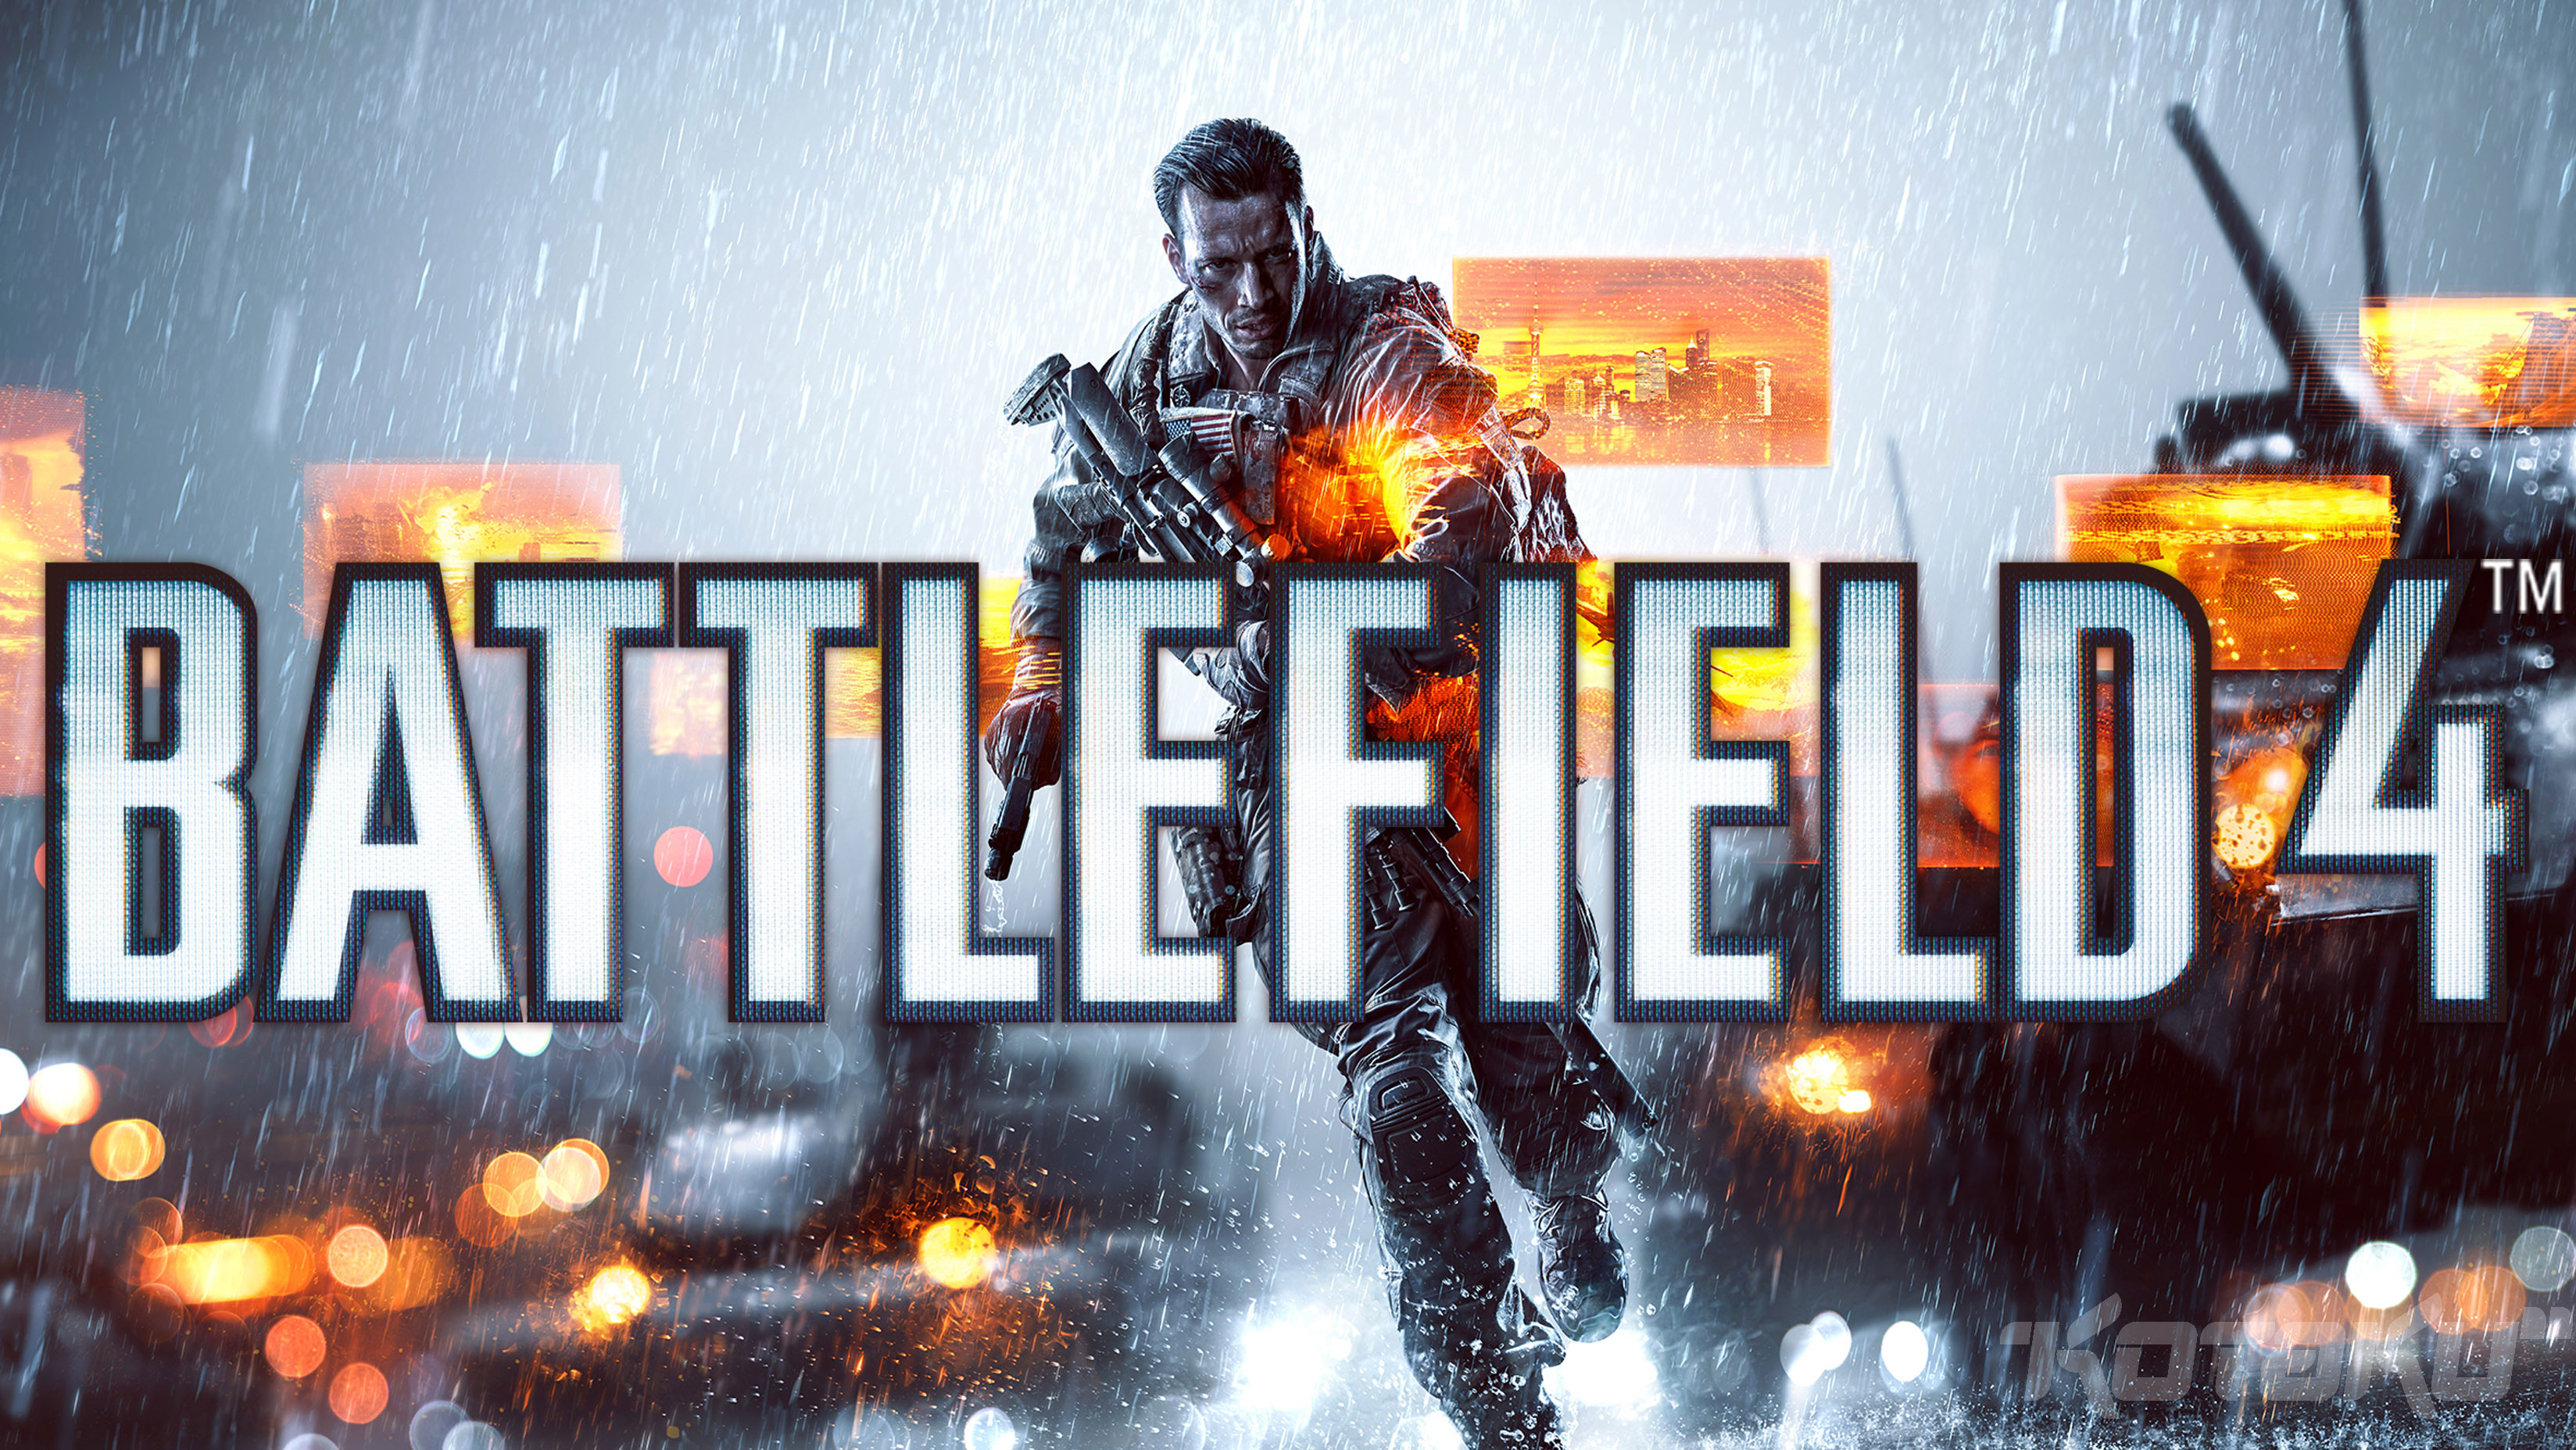 Enthüllt: Battlefield 4 Artwork